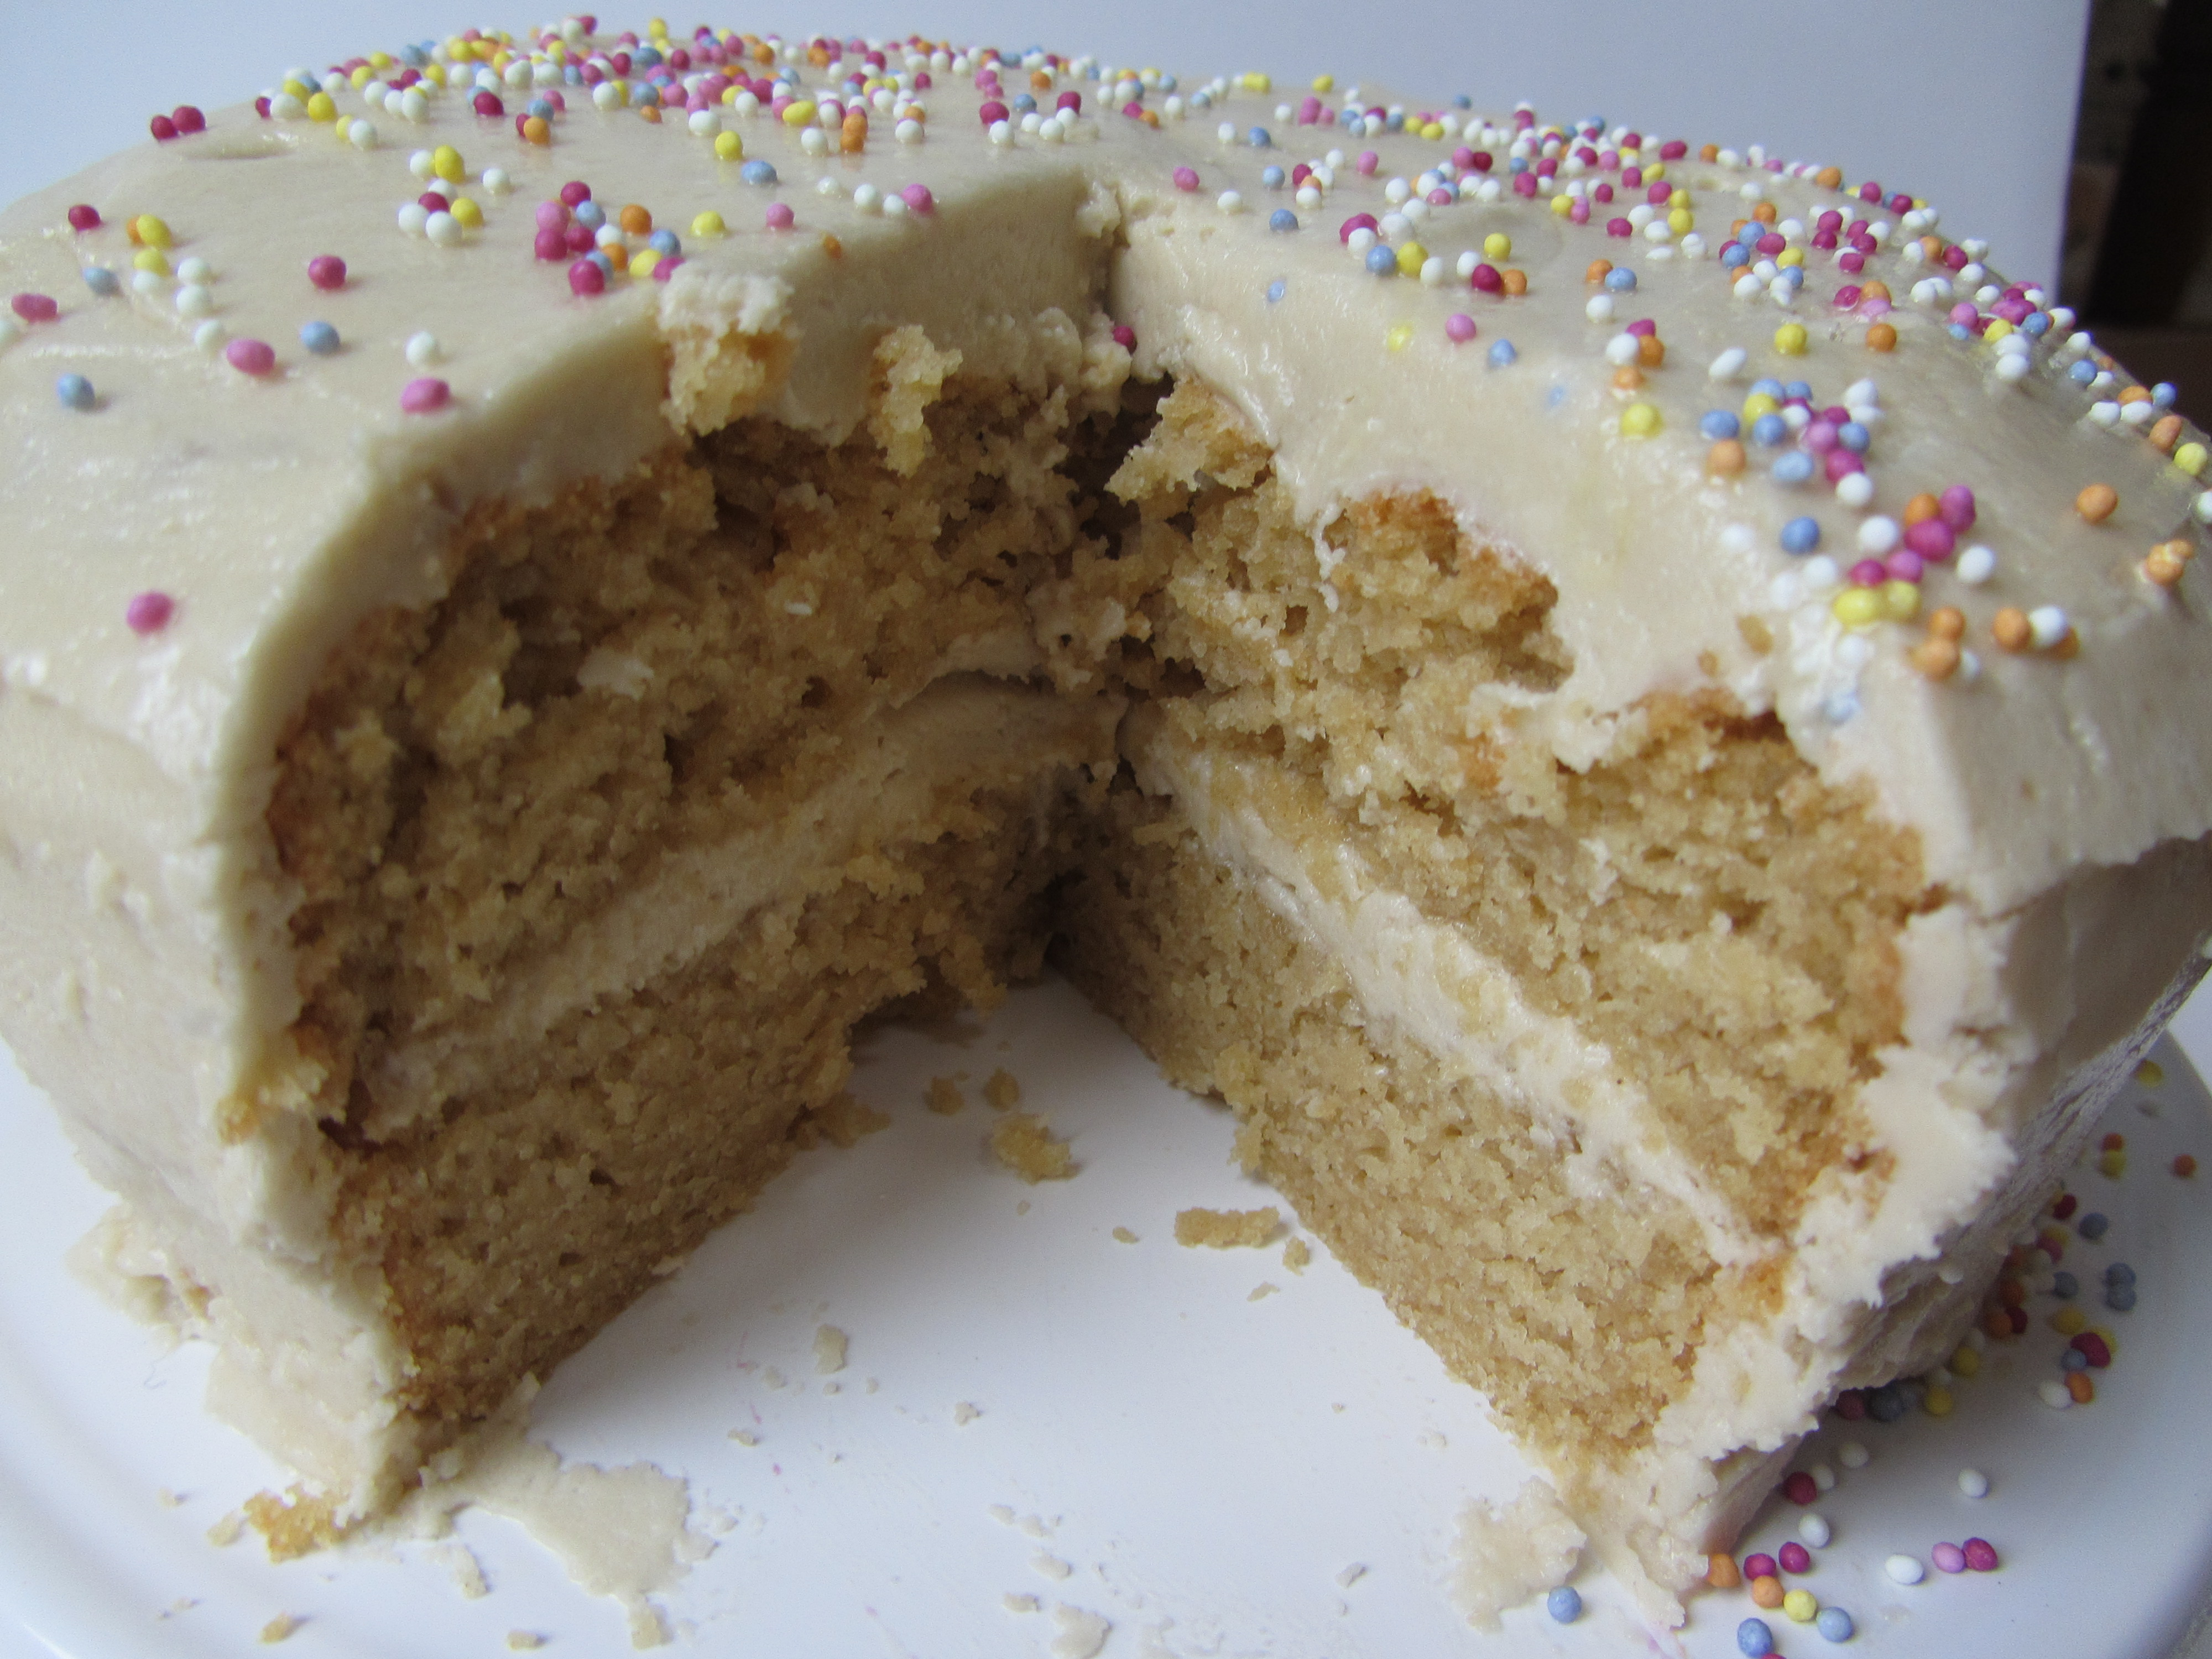 Dairy and egg free cakes recipe